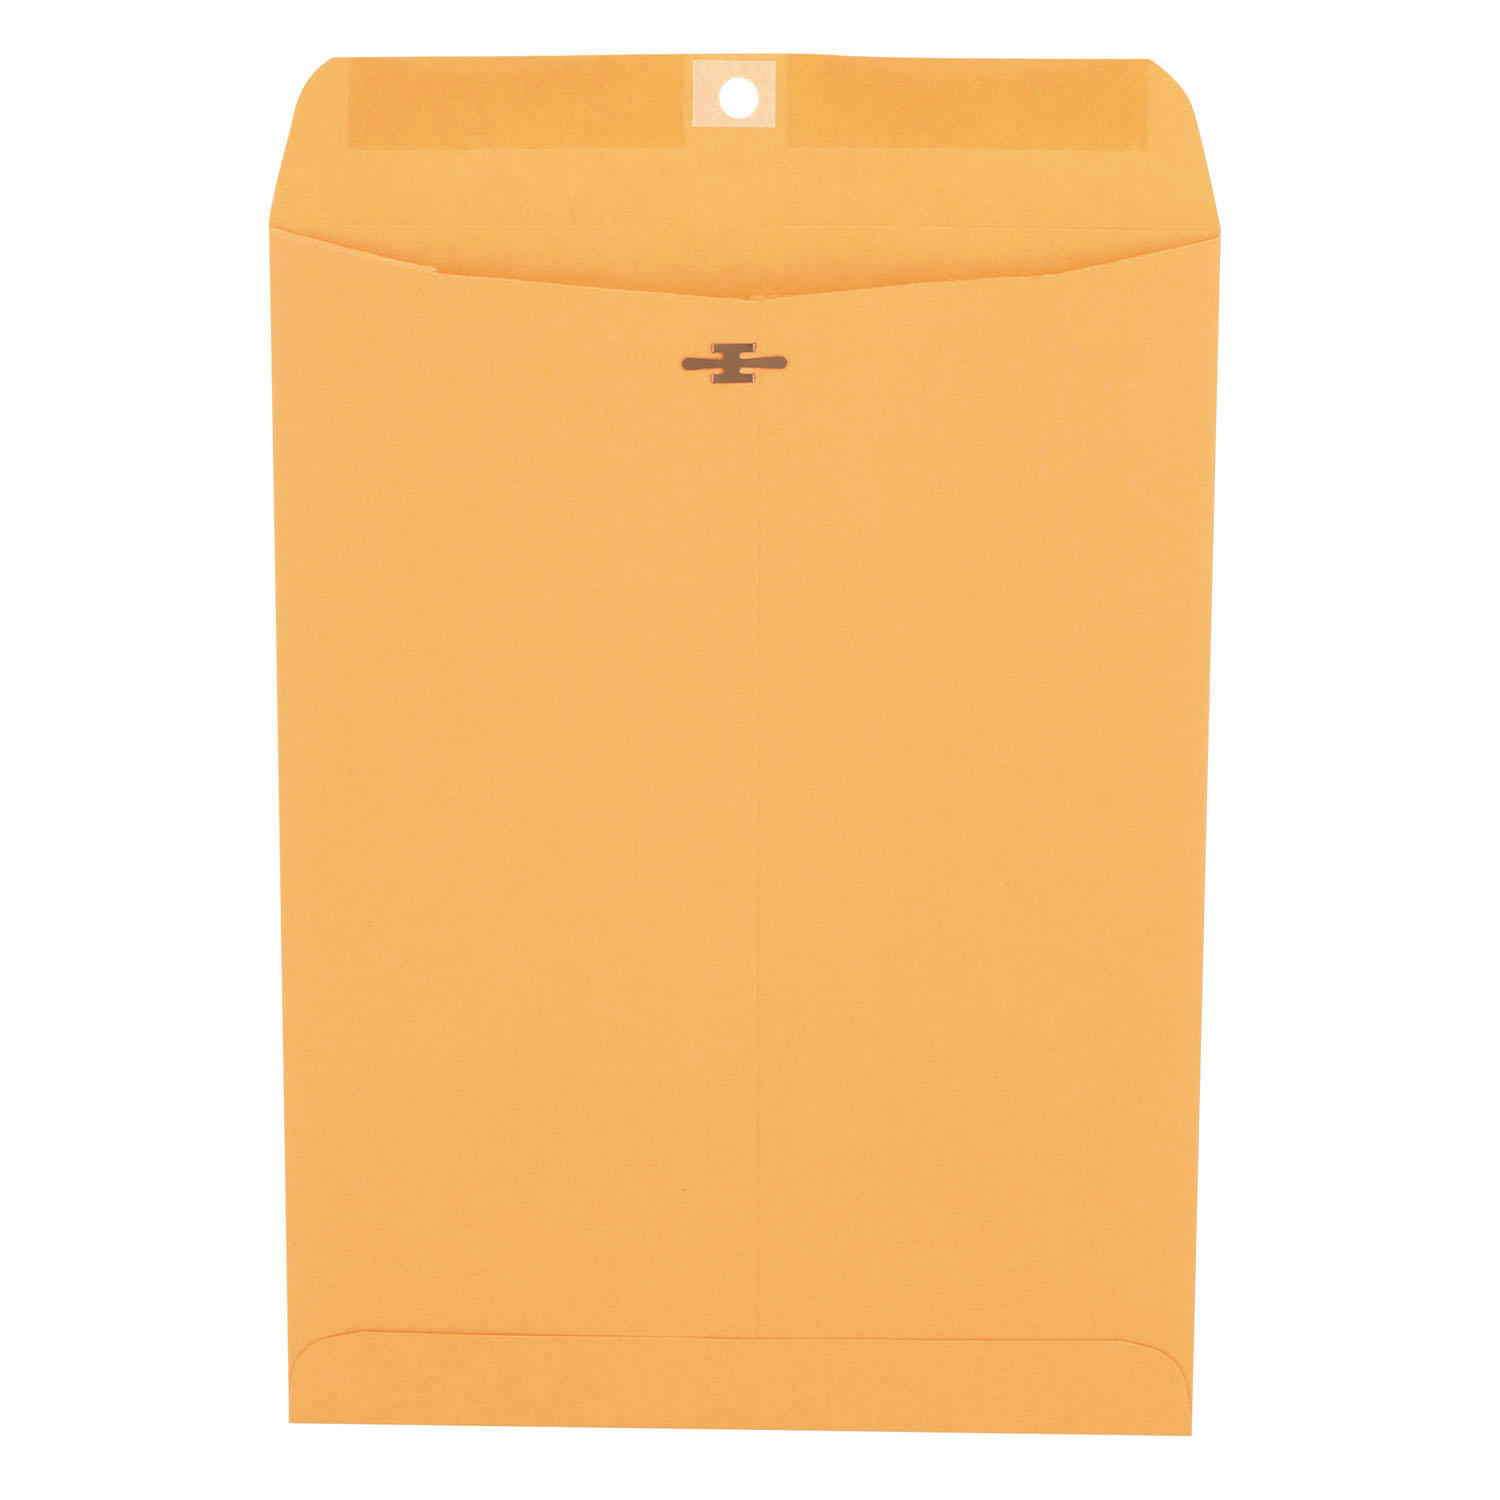 Kraft Clasp Envelope, Center Seam, 28lb, 9 x 12, Brown Kraft, 100/Box